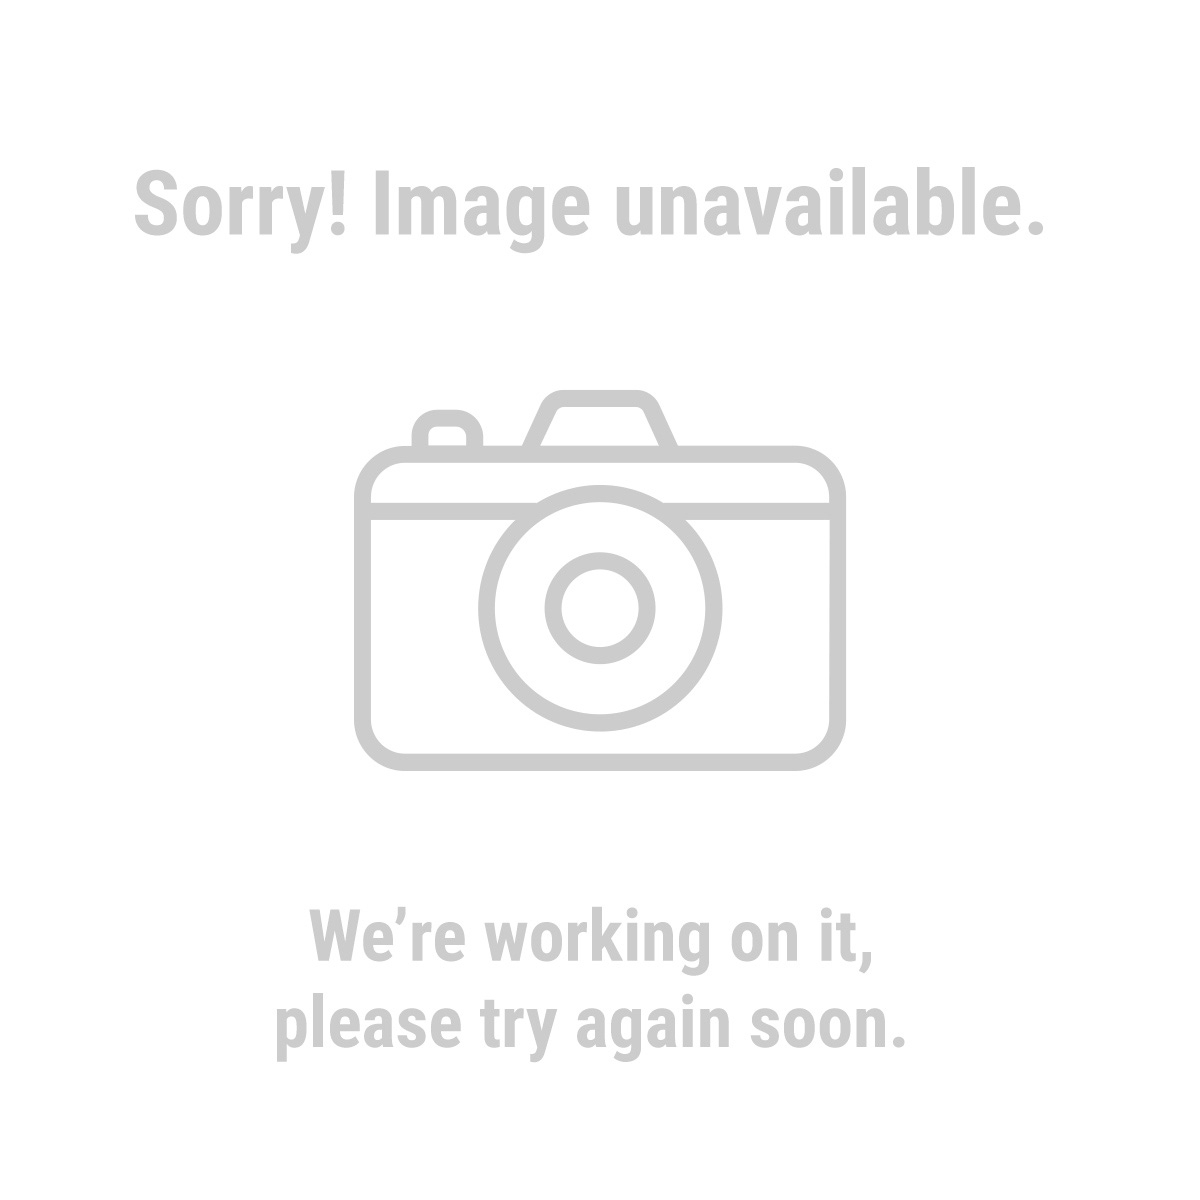 HFT 69194 29 ft. 4 in. x 49 ft. All Purpose Weather Resistant Tarp